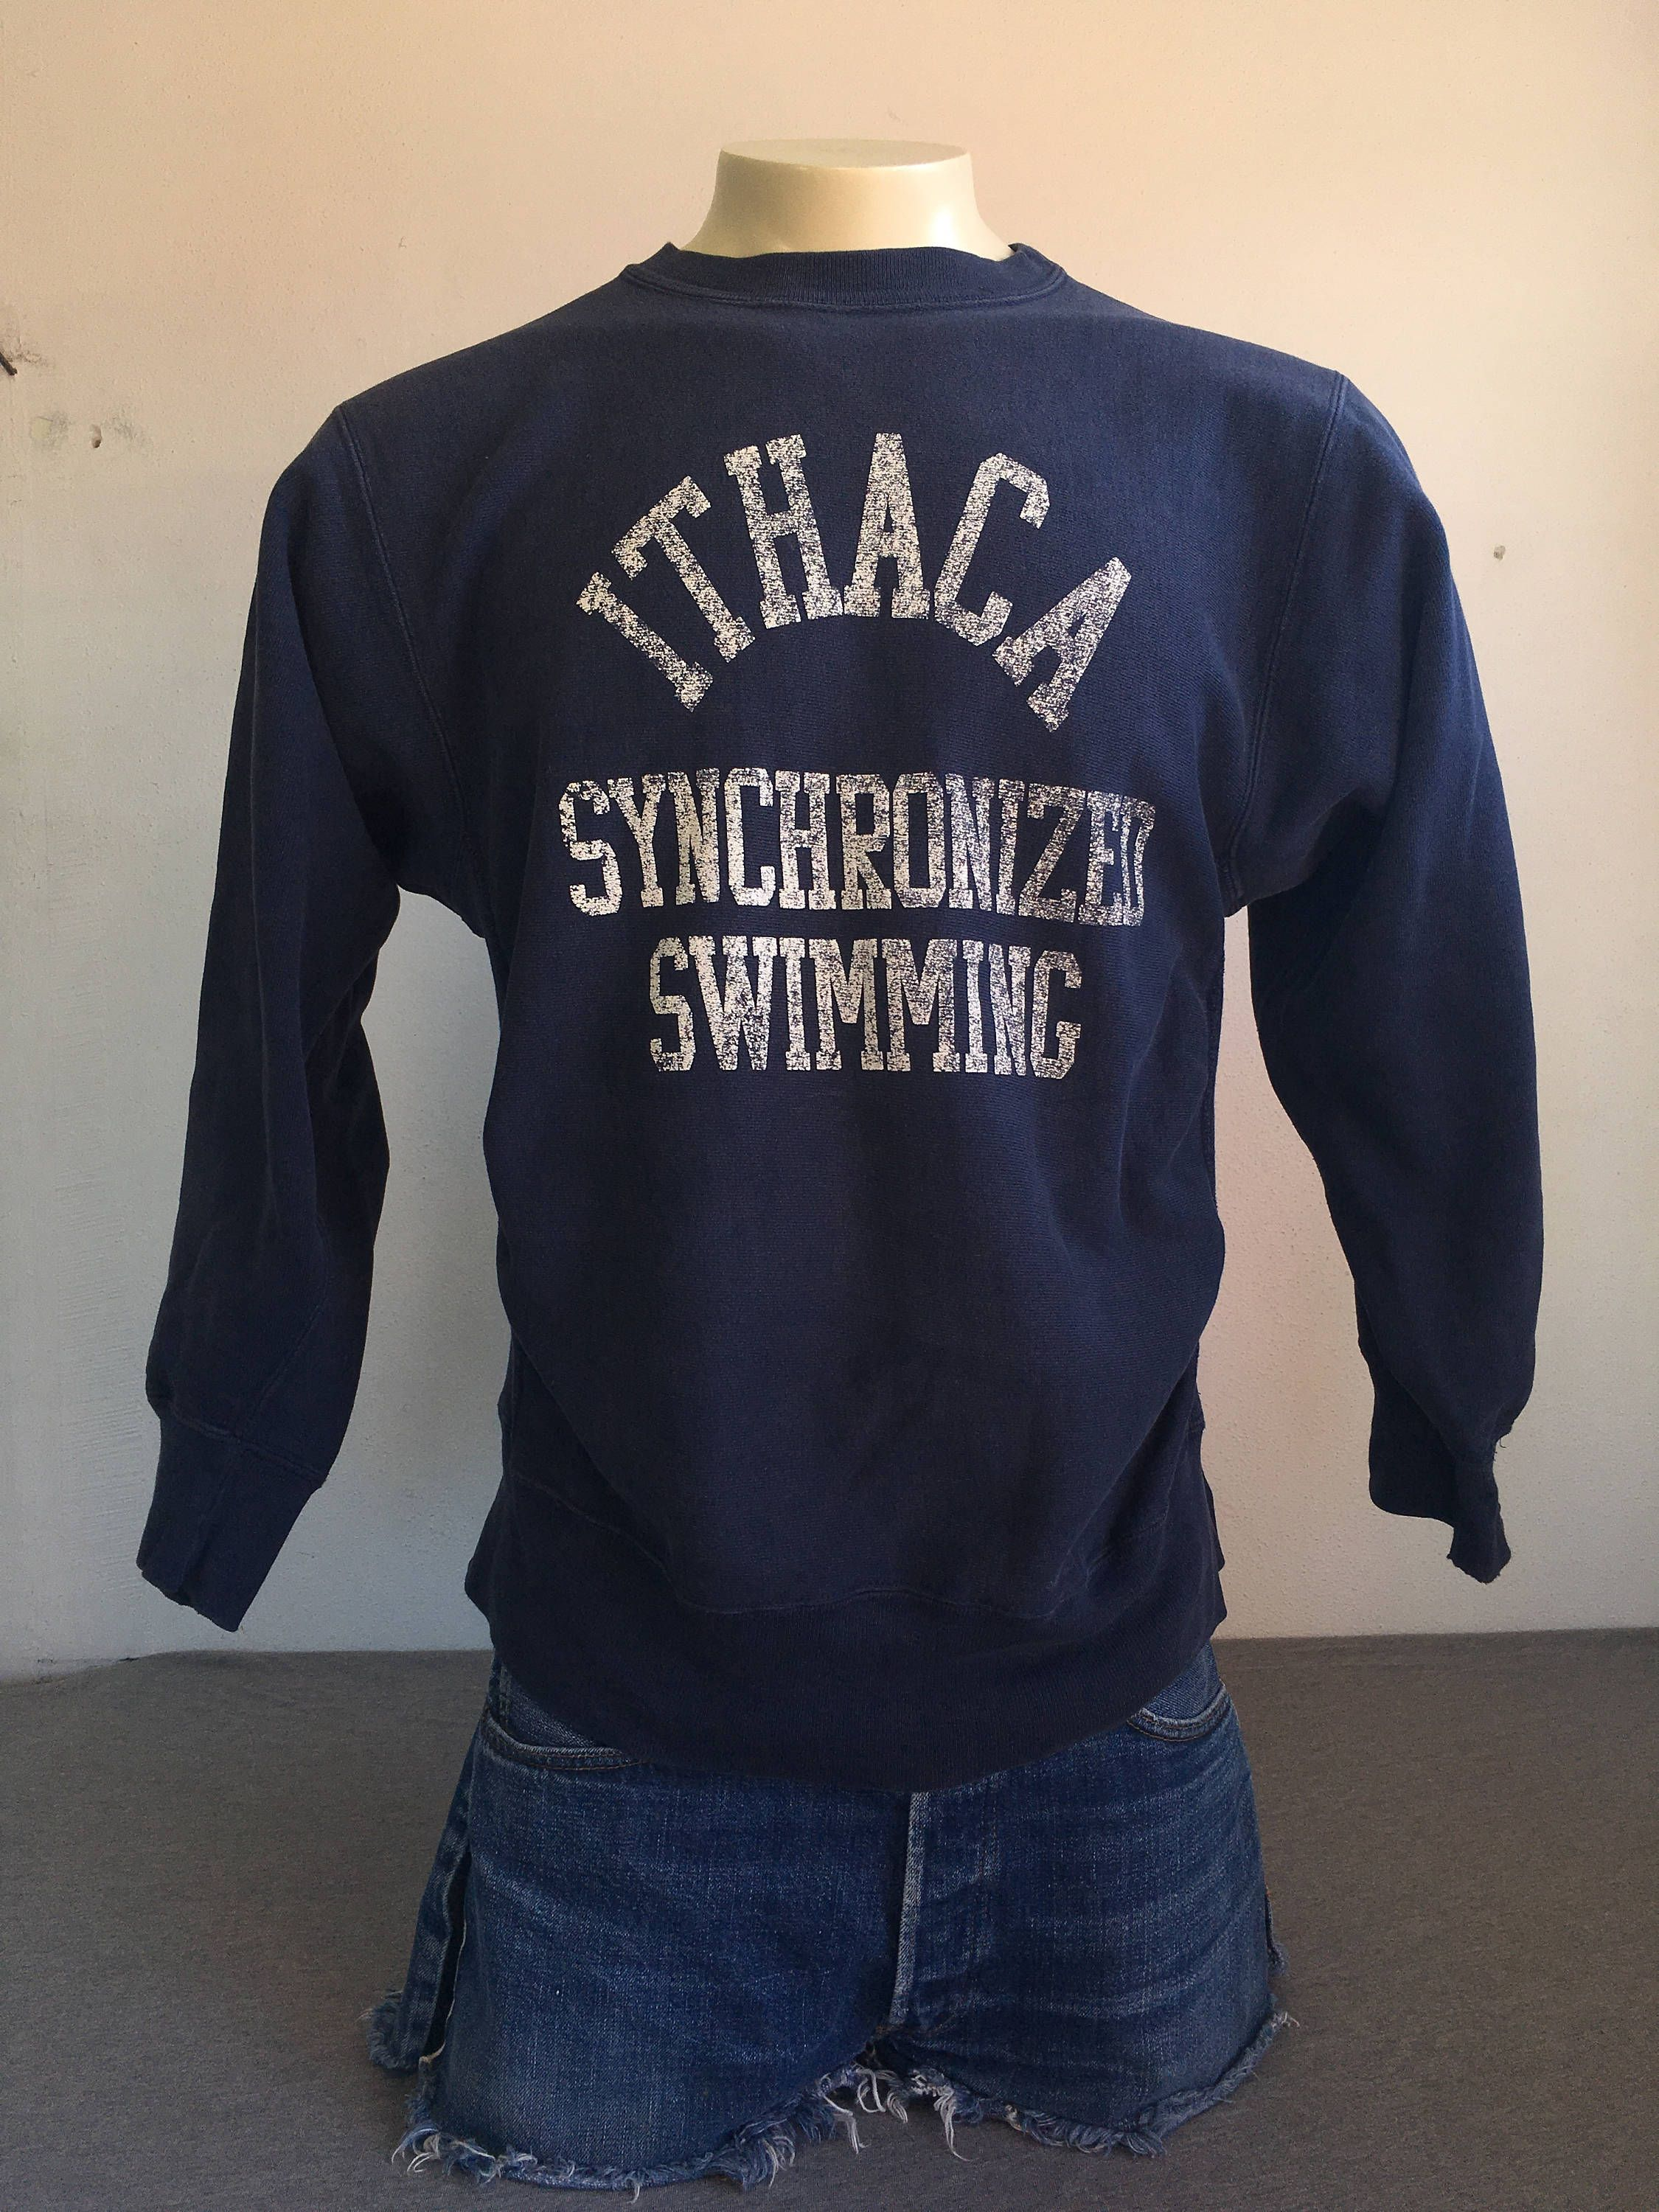 22c703ad1558 ITHACA Sweatshirt Sweater 80 s Vintage  CHAMPION Reverse Weave New York NYC  Synchronized Swimming Shirt  Gusset Stitch Blue UsA Made Large by  sweetVTGtshirt ...